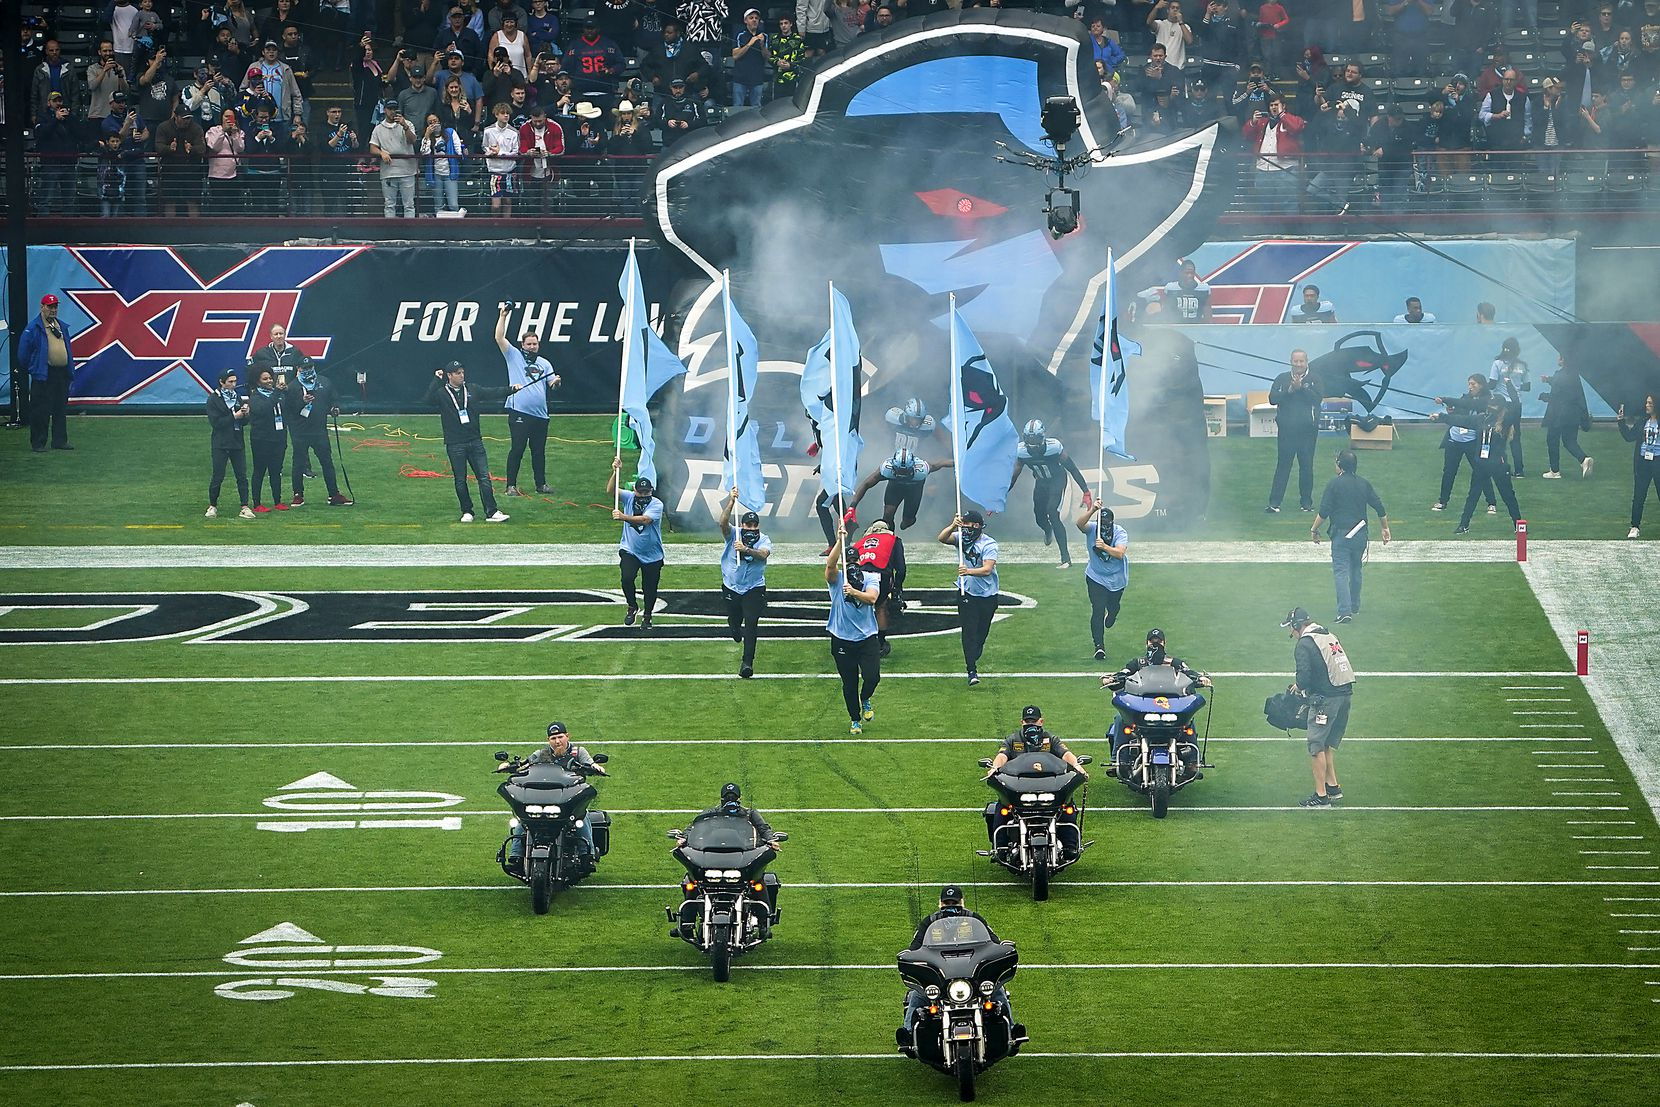 Dallas Renegades player take the field for the team's inaugural XFL football game against the St. Louis Battlehawks at Globe Life Park on Sunday, Feb. 9, 2020, in Arlington.